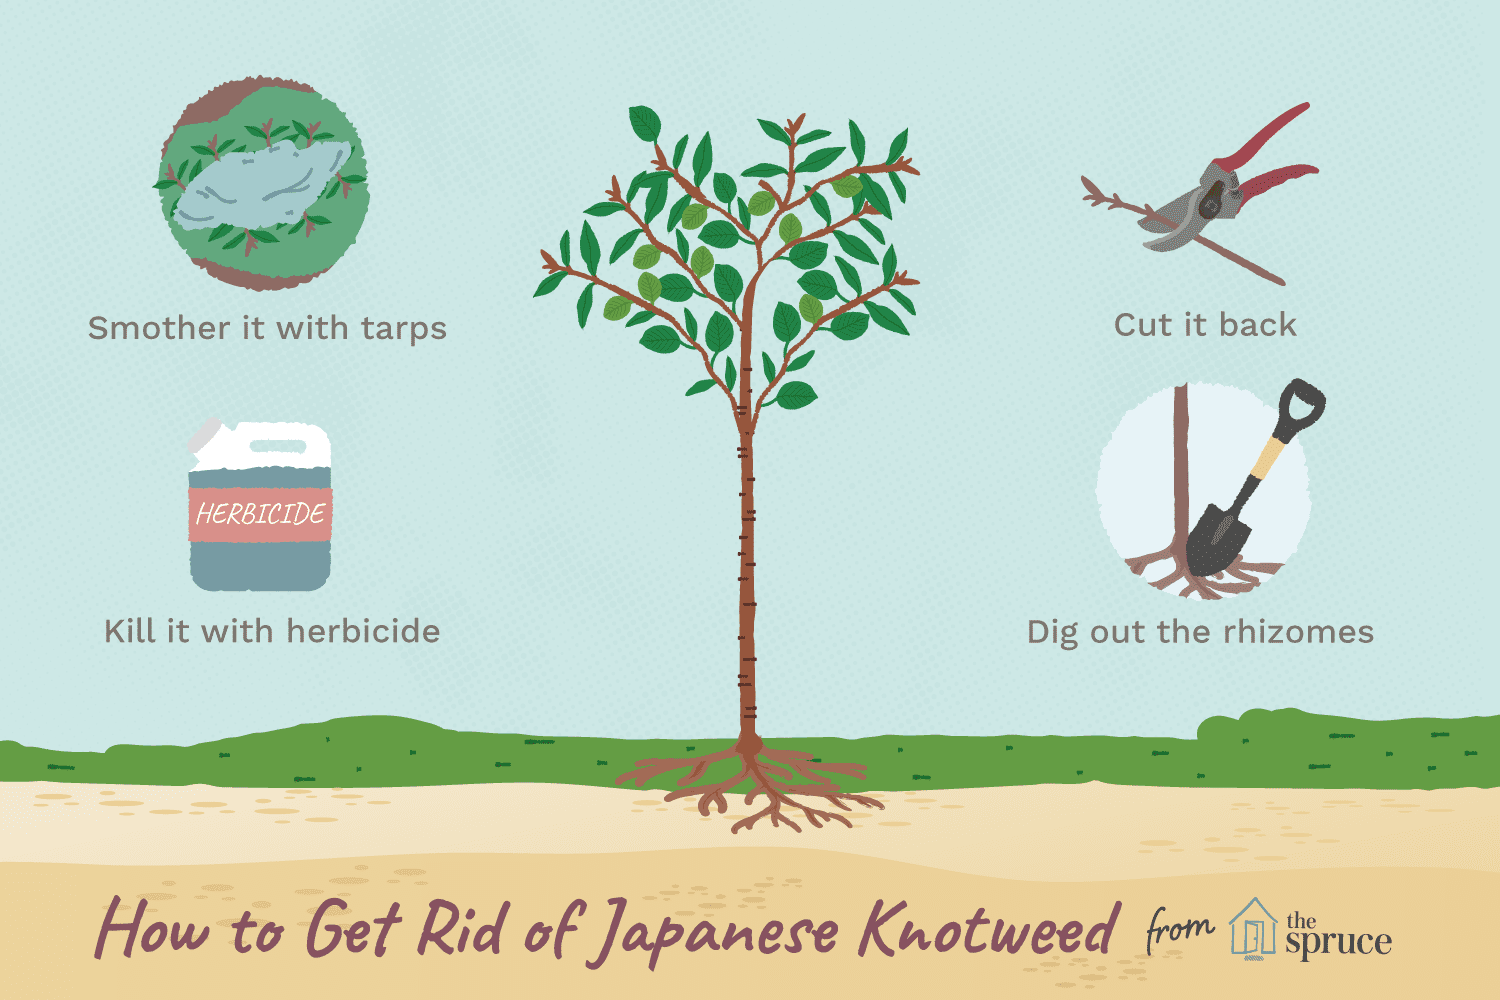 How to Eradicate Japanese Knotweed